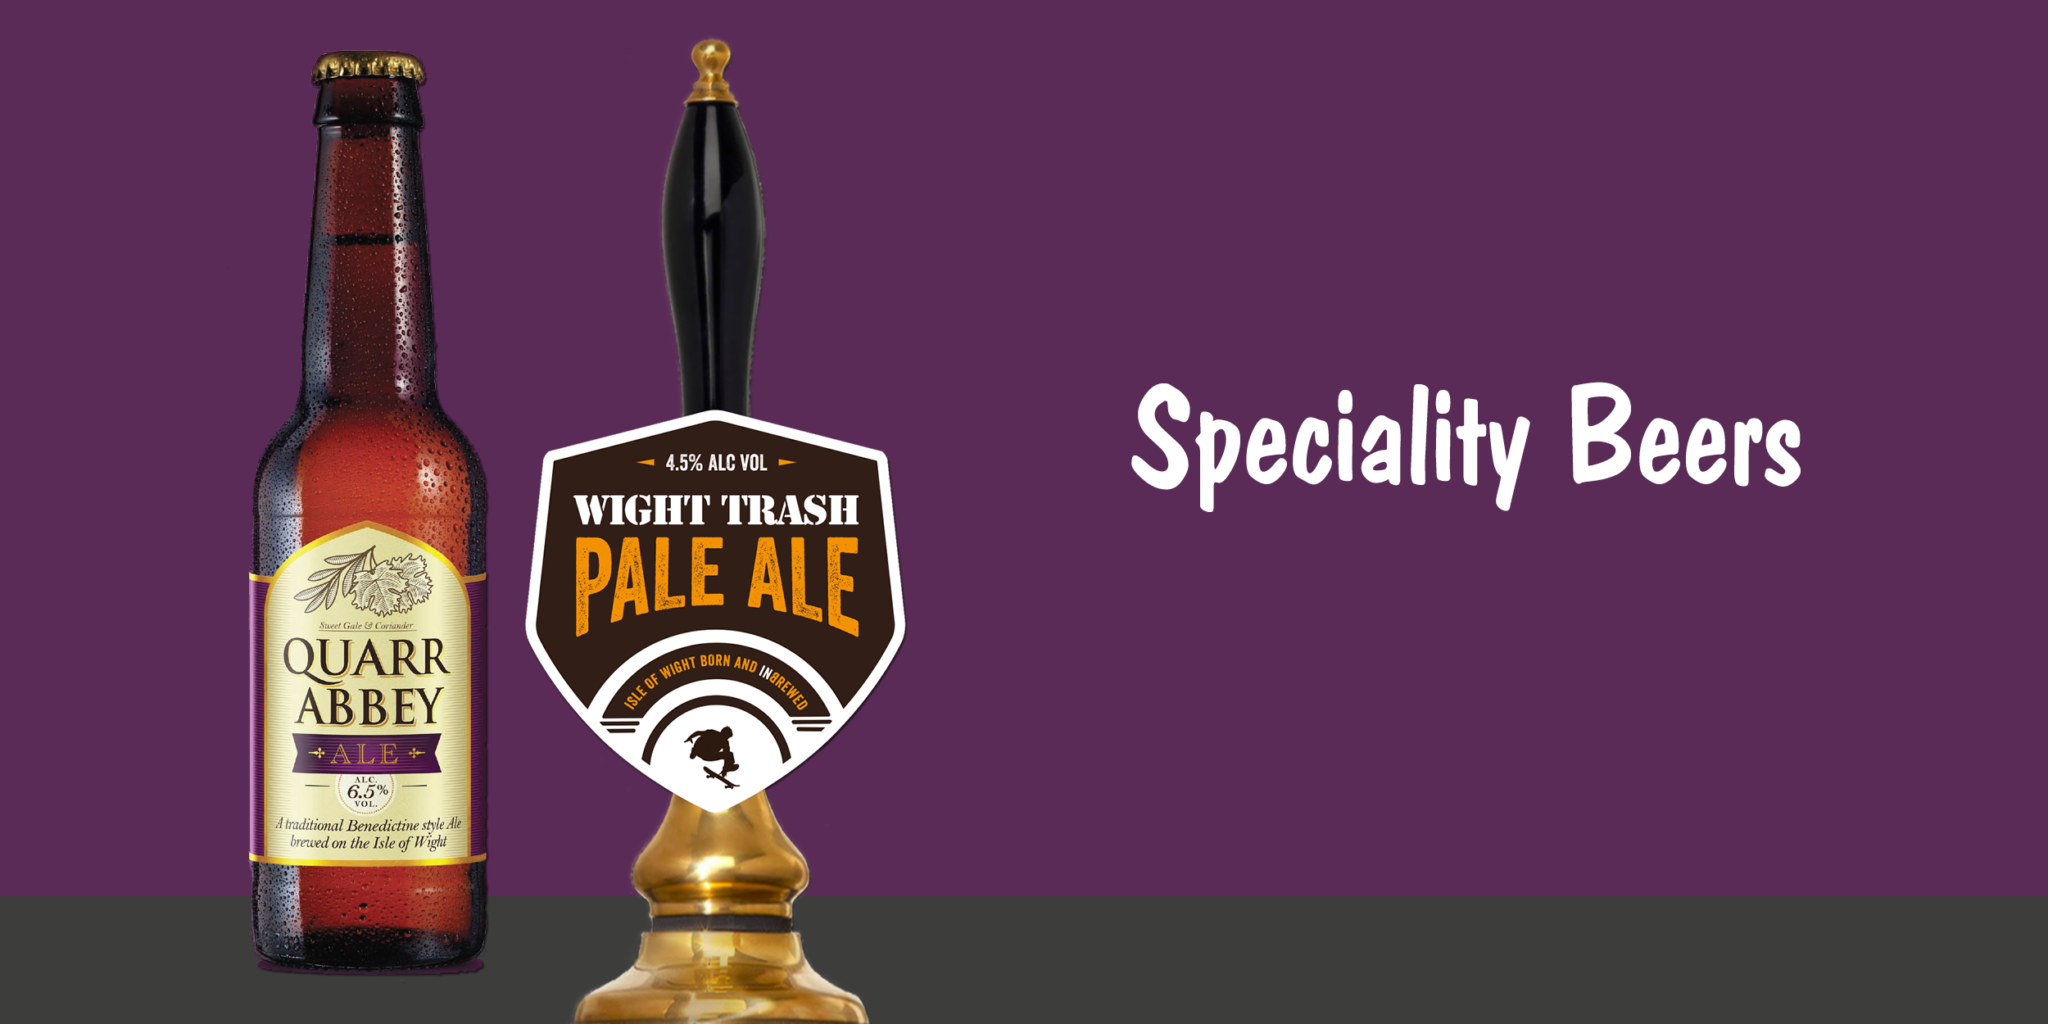 Speciality Beers